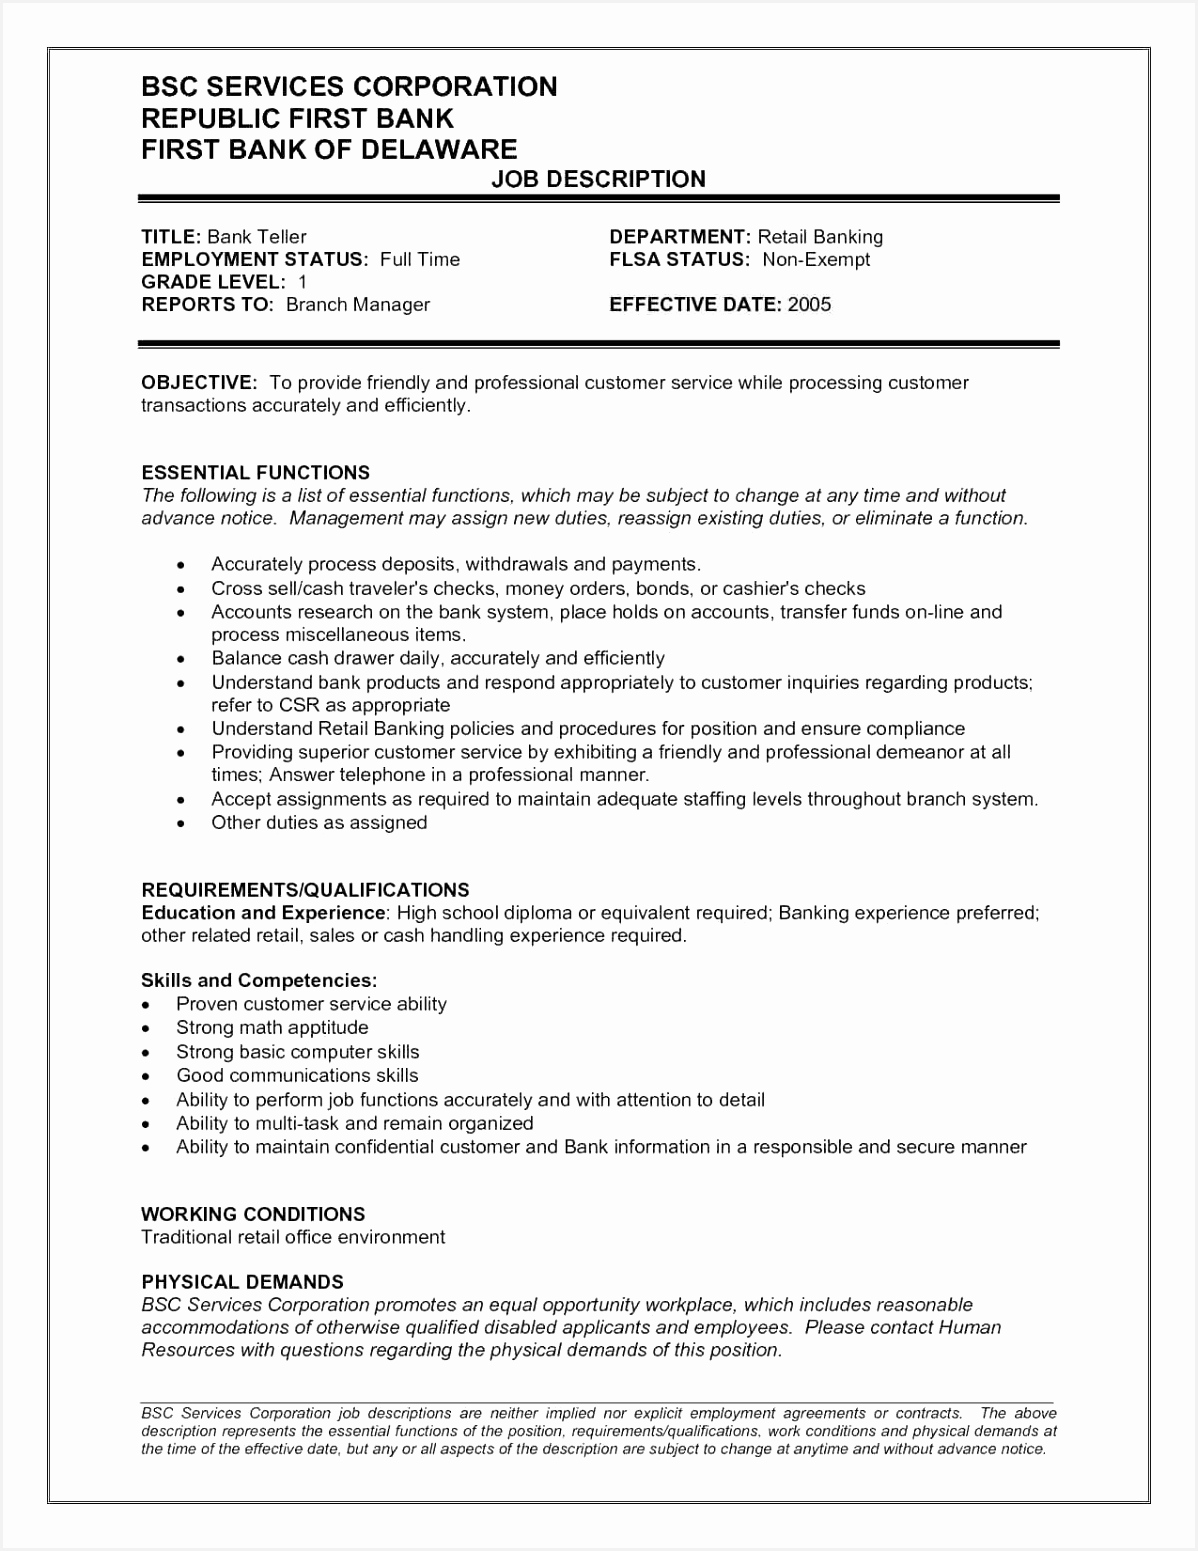 Sample Bank Management Resume Rkbpg Lovely 19 Expensive Management Resume Examples Sierra Of Sample Bank Management Resume Dh2lfb New 25 Bank Manager Resume